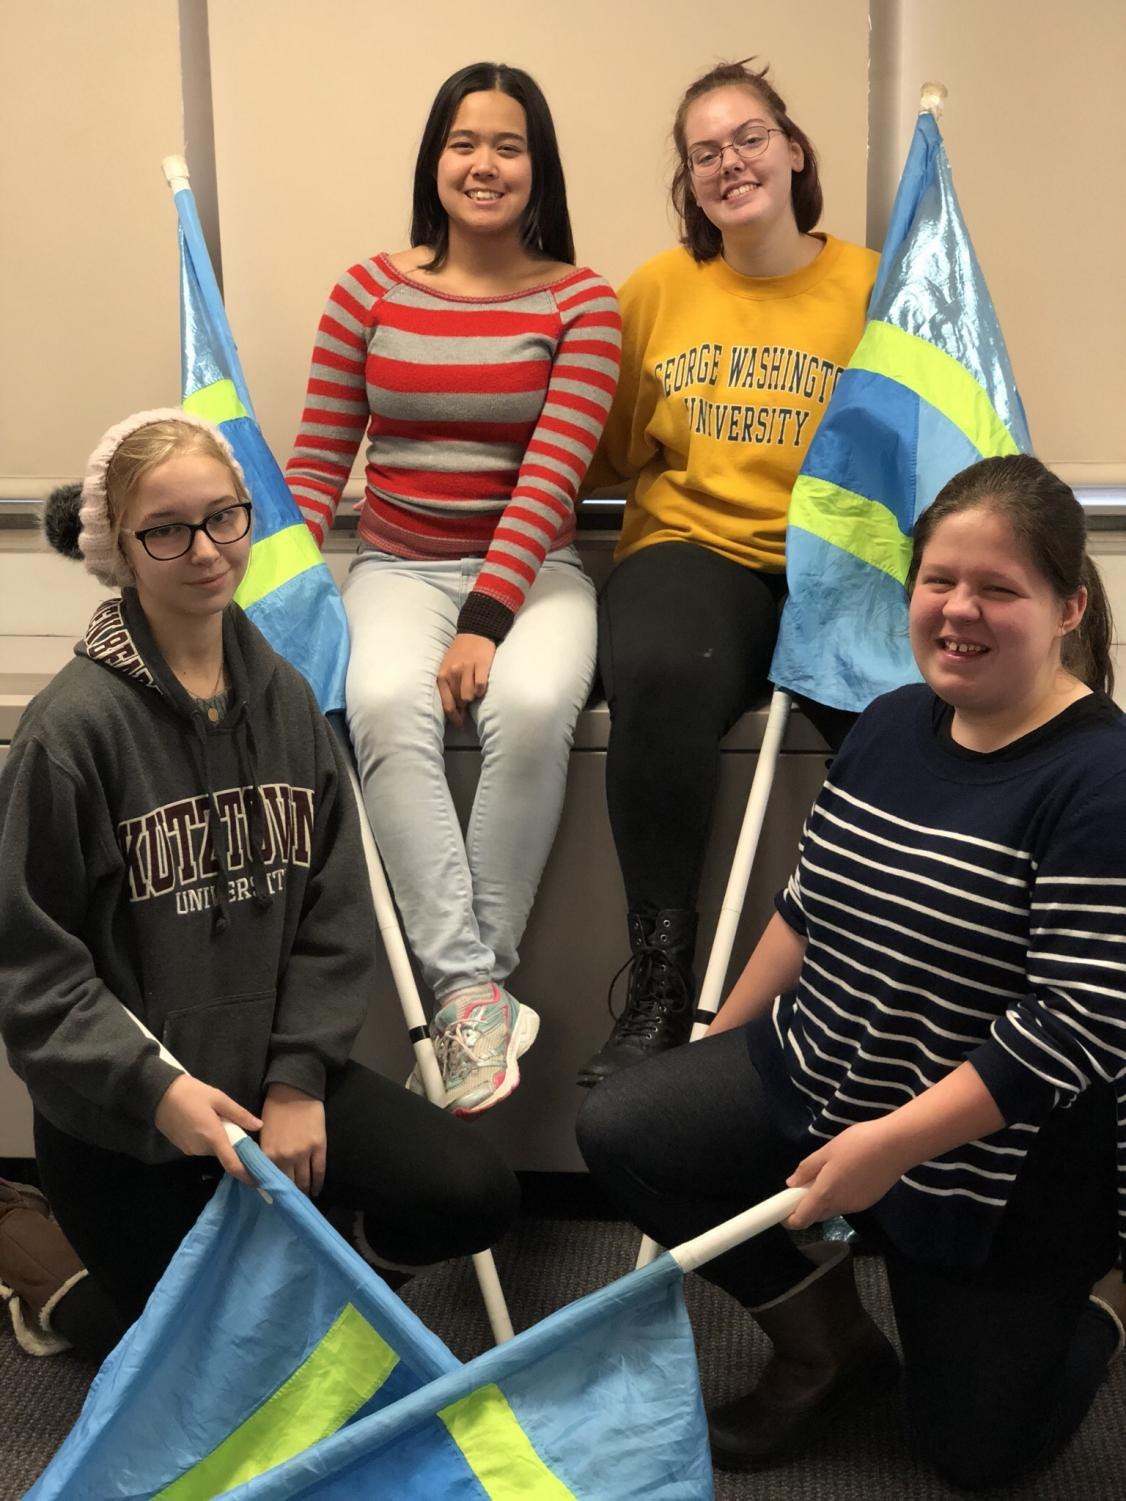 The four Southern Lehigh color guard members joined StarCross to further their skills and knowledge.